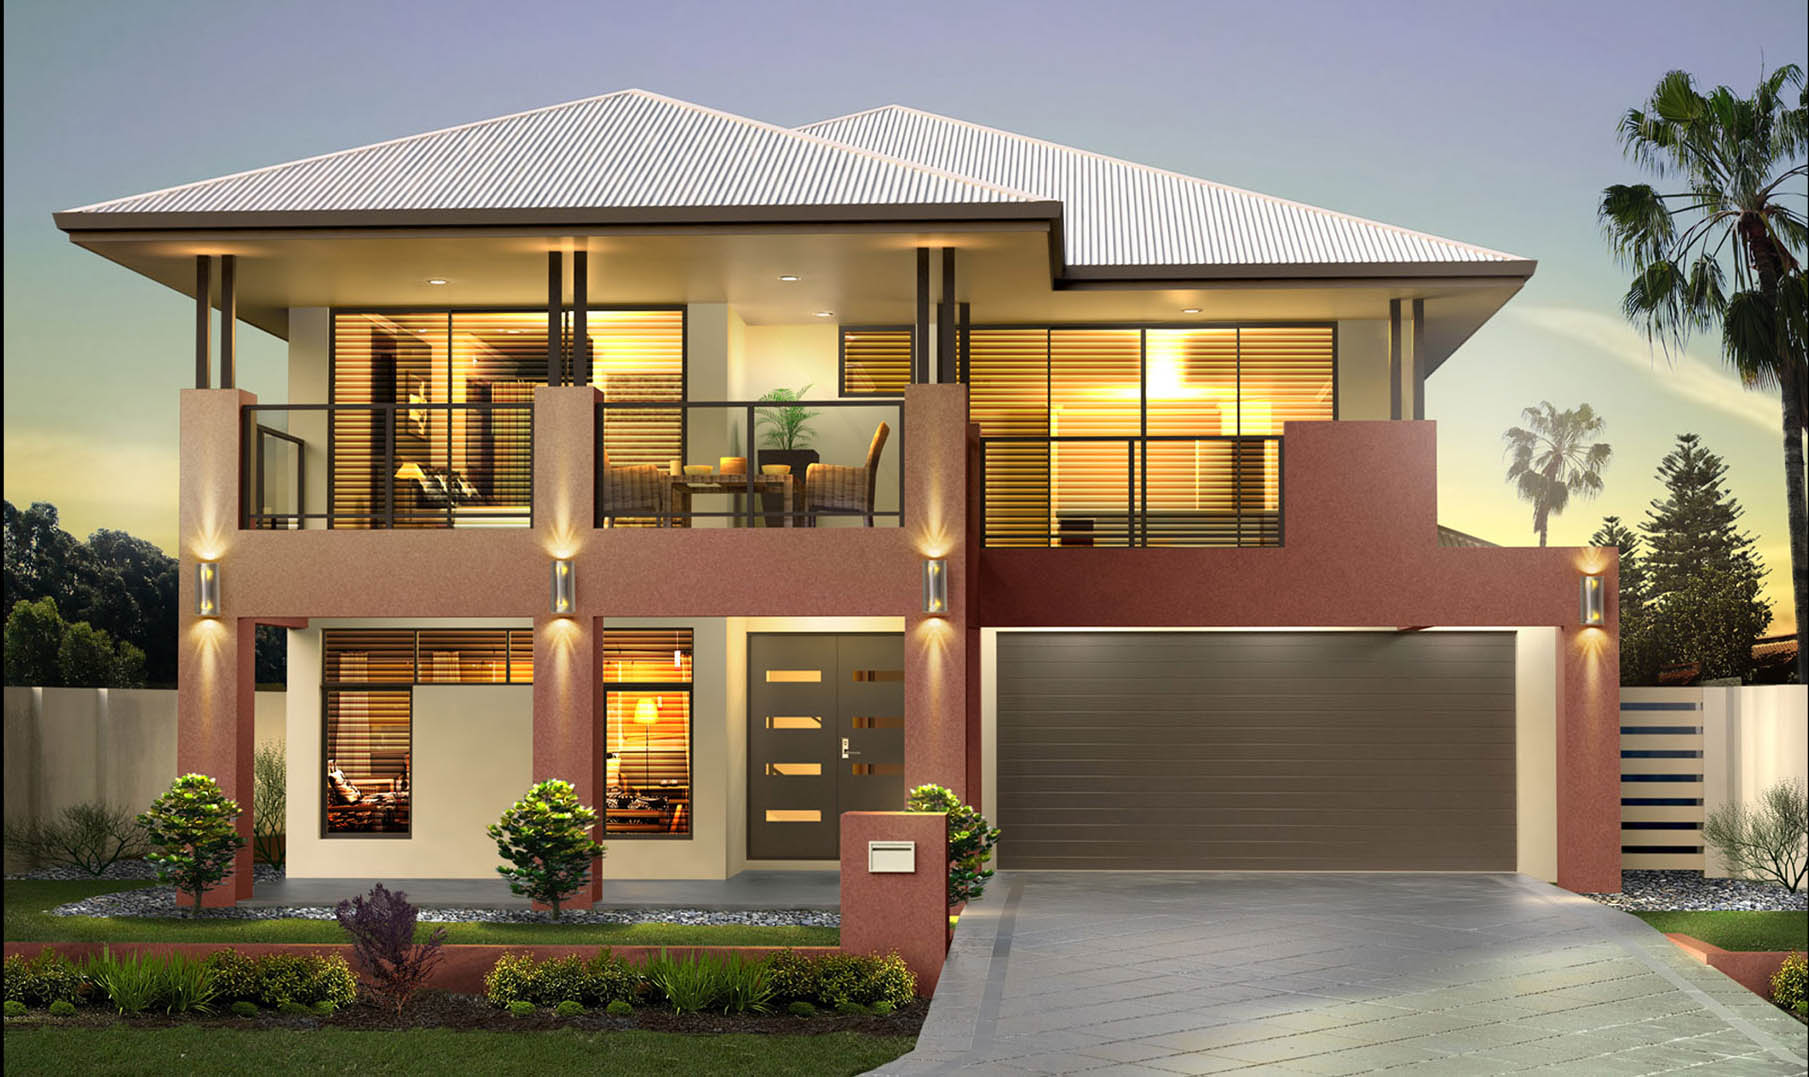 San remo series 1 upstairs living new 2 storey homes perth for Upstairs house plans